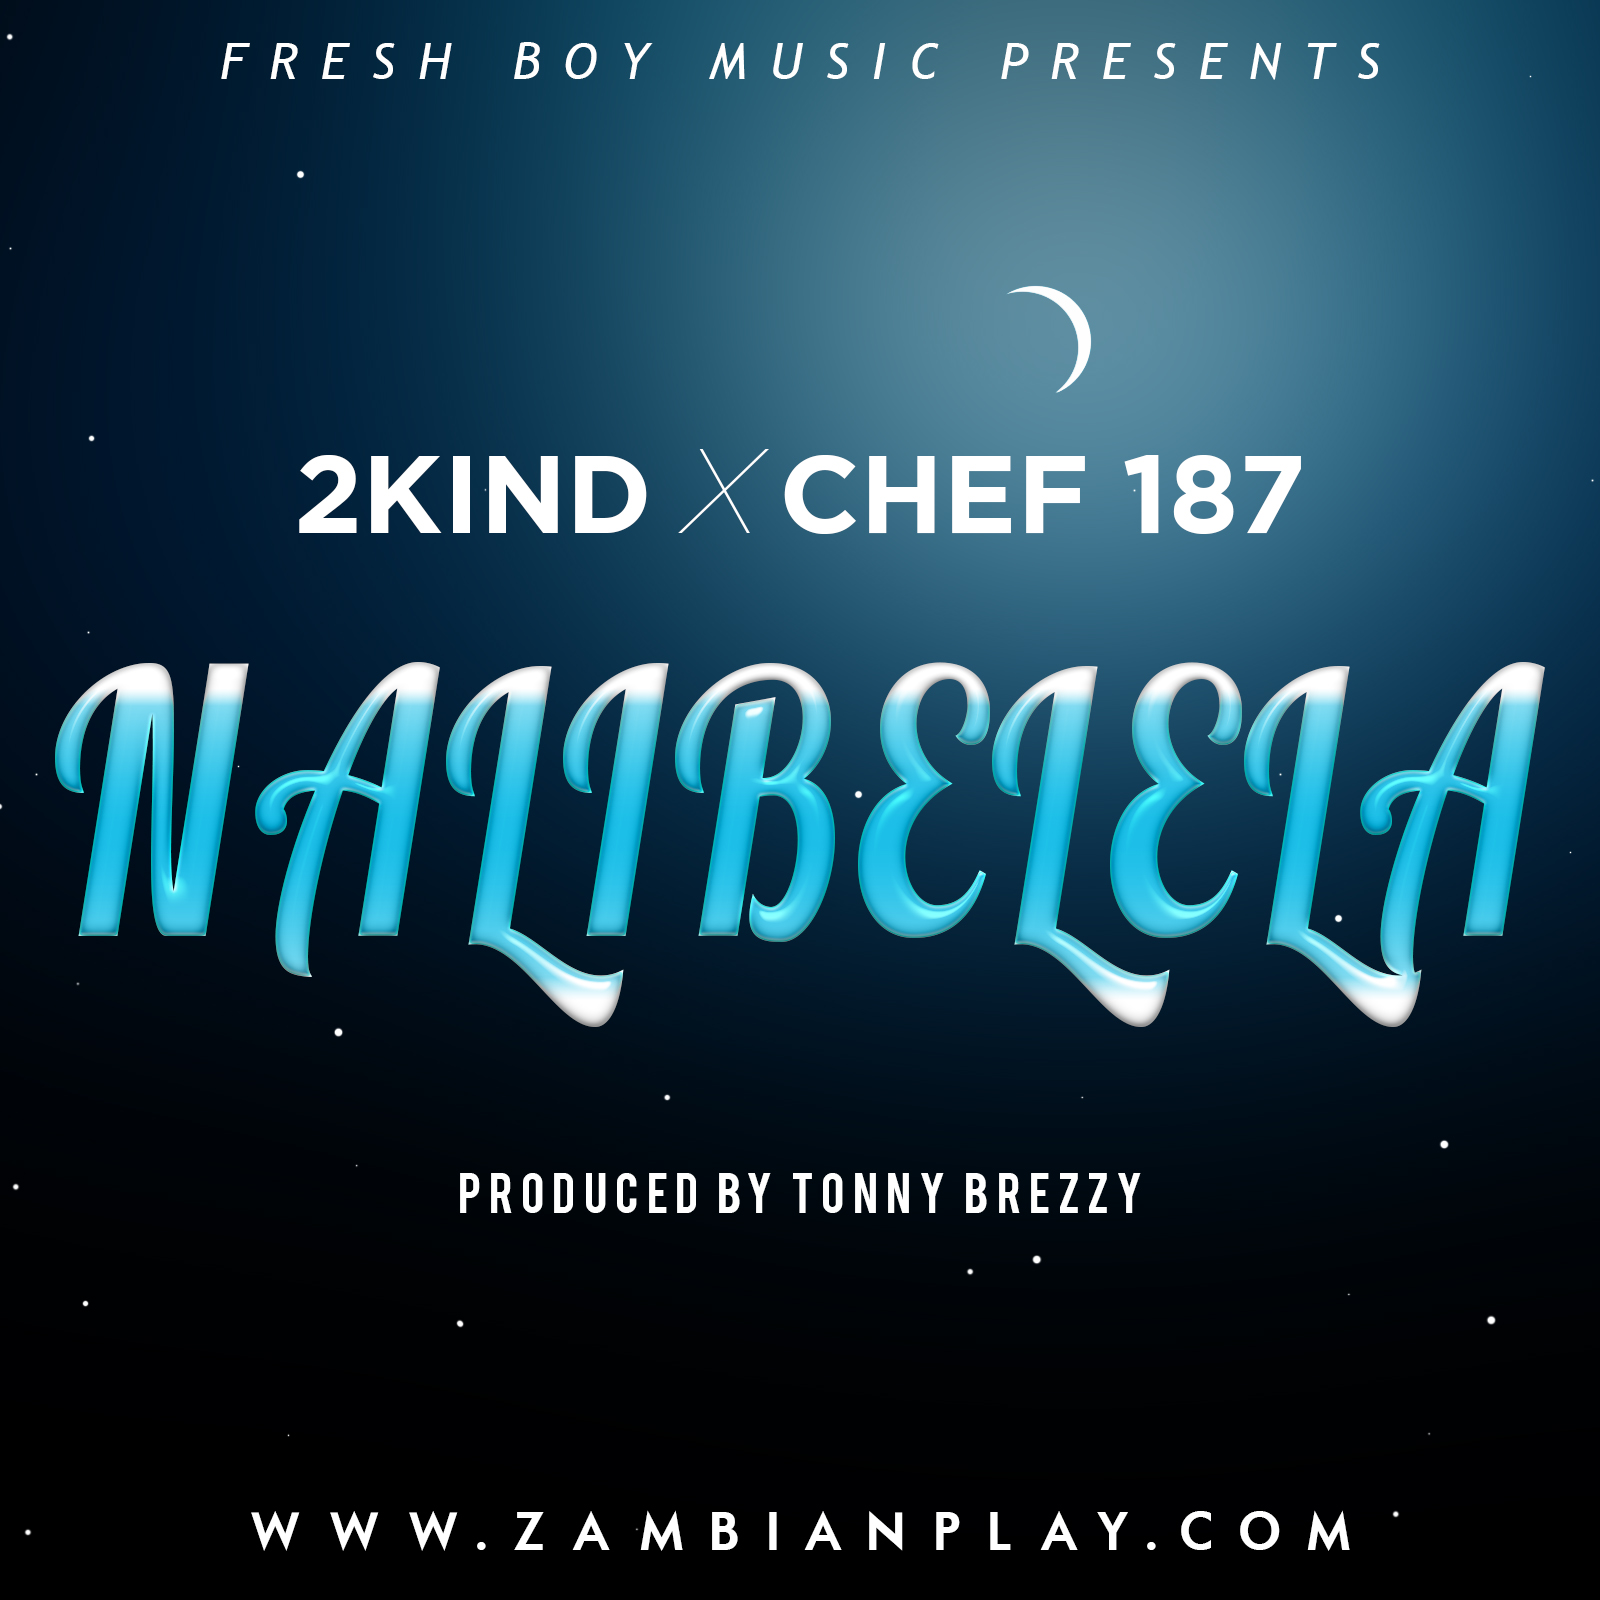 2Kind Ft. Chef 187 Nalibelela Prod. By Tonny Breezy